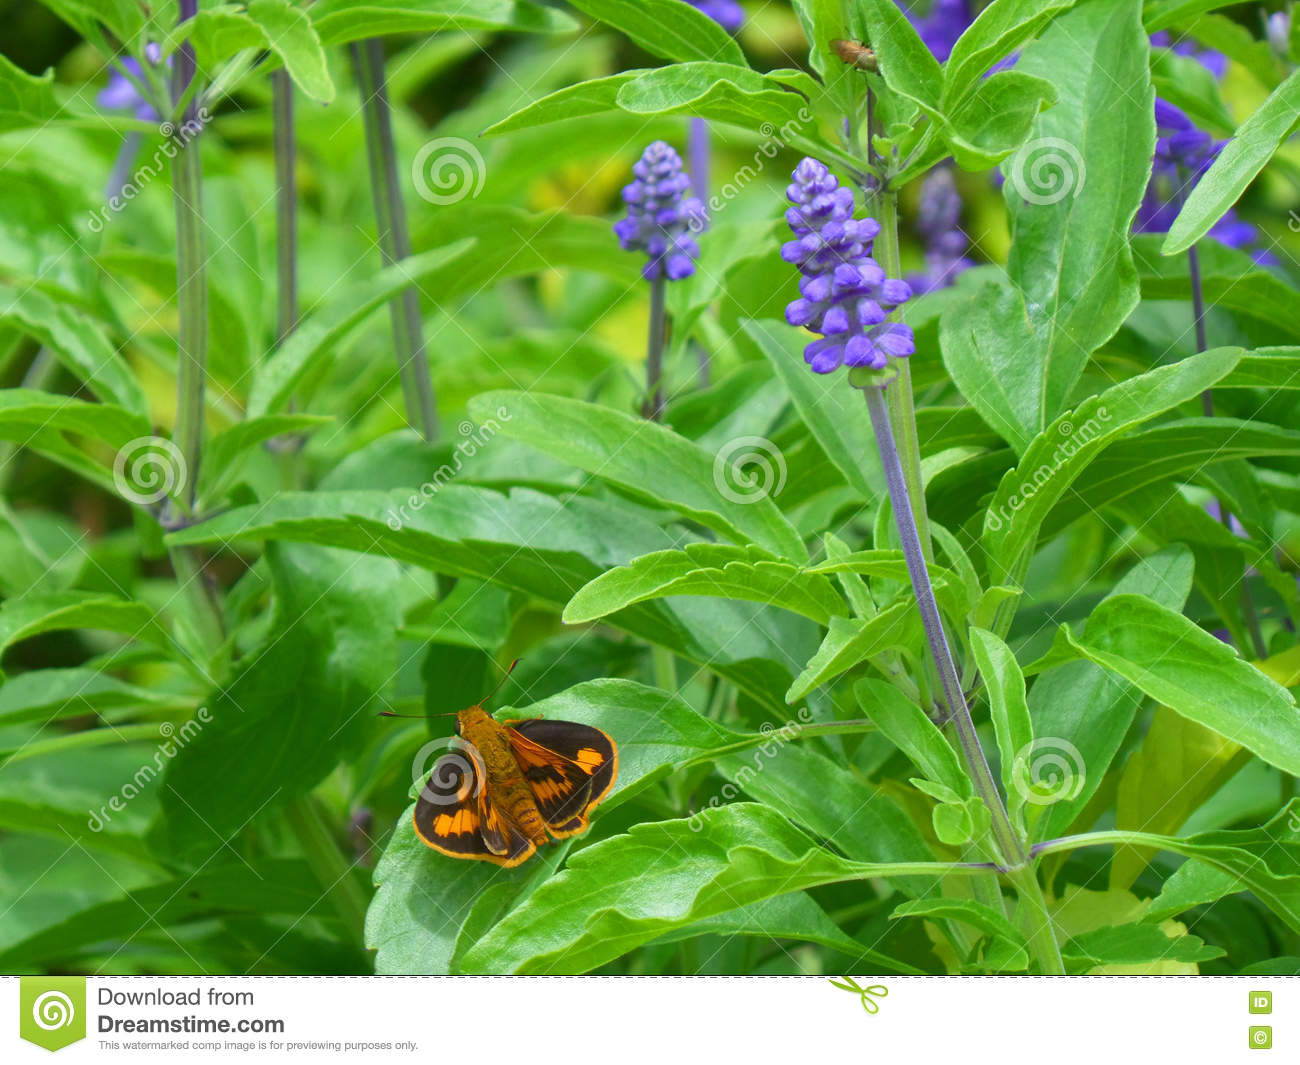 Orange and black butterfly on the green leaf of Lavender plant